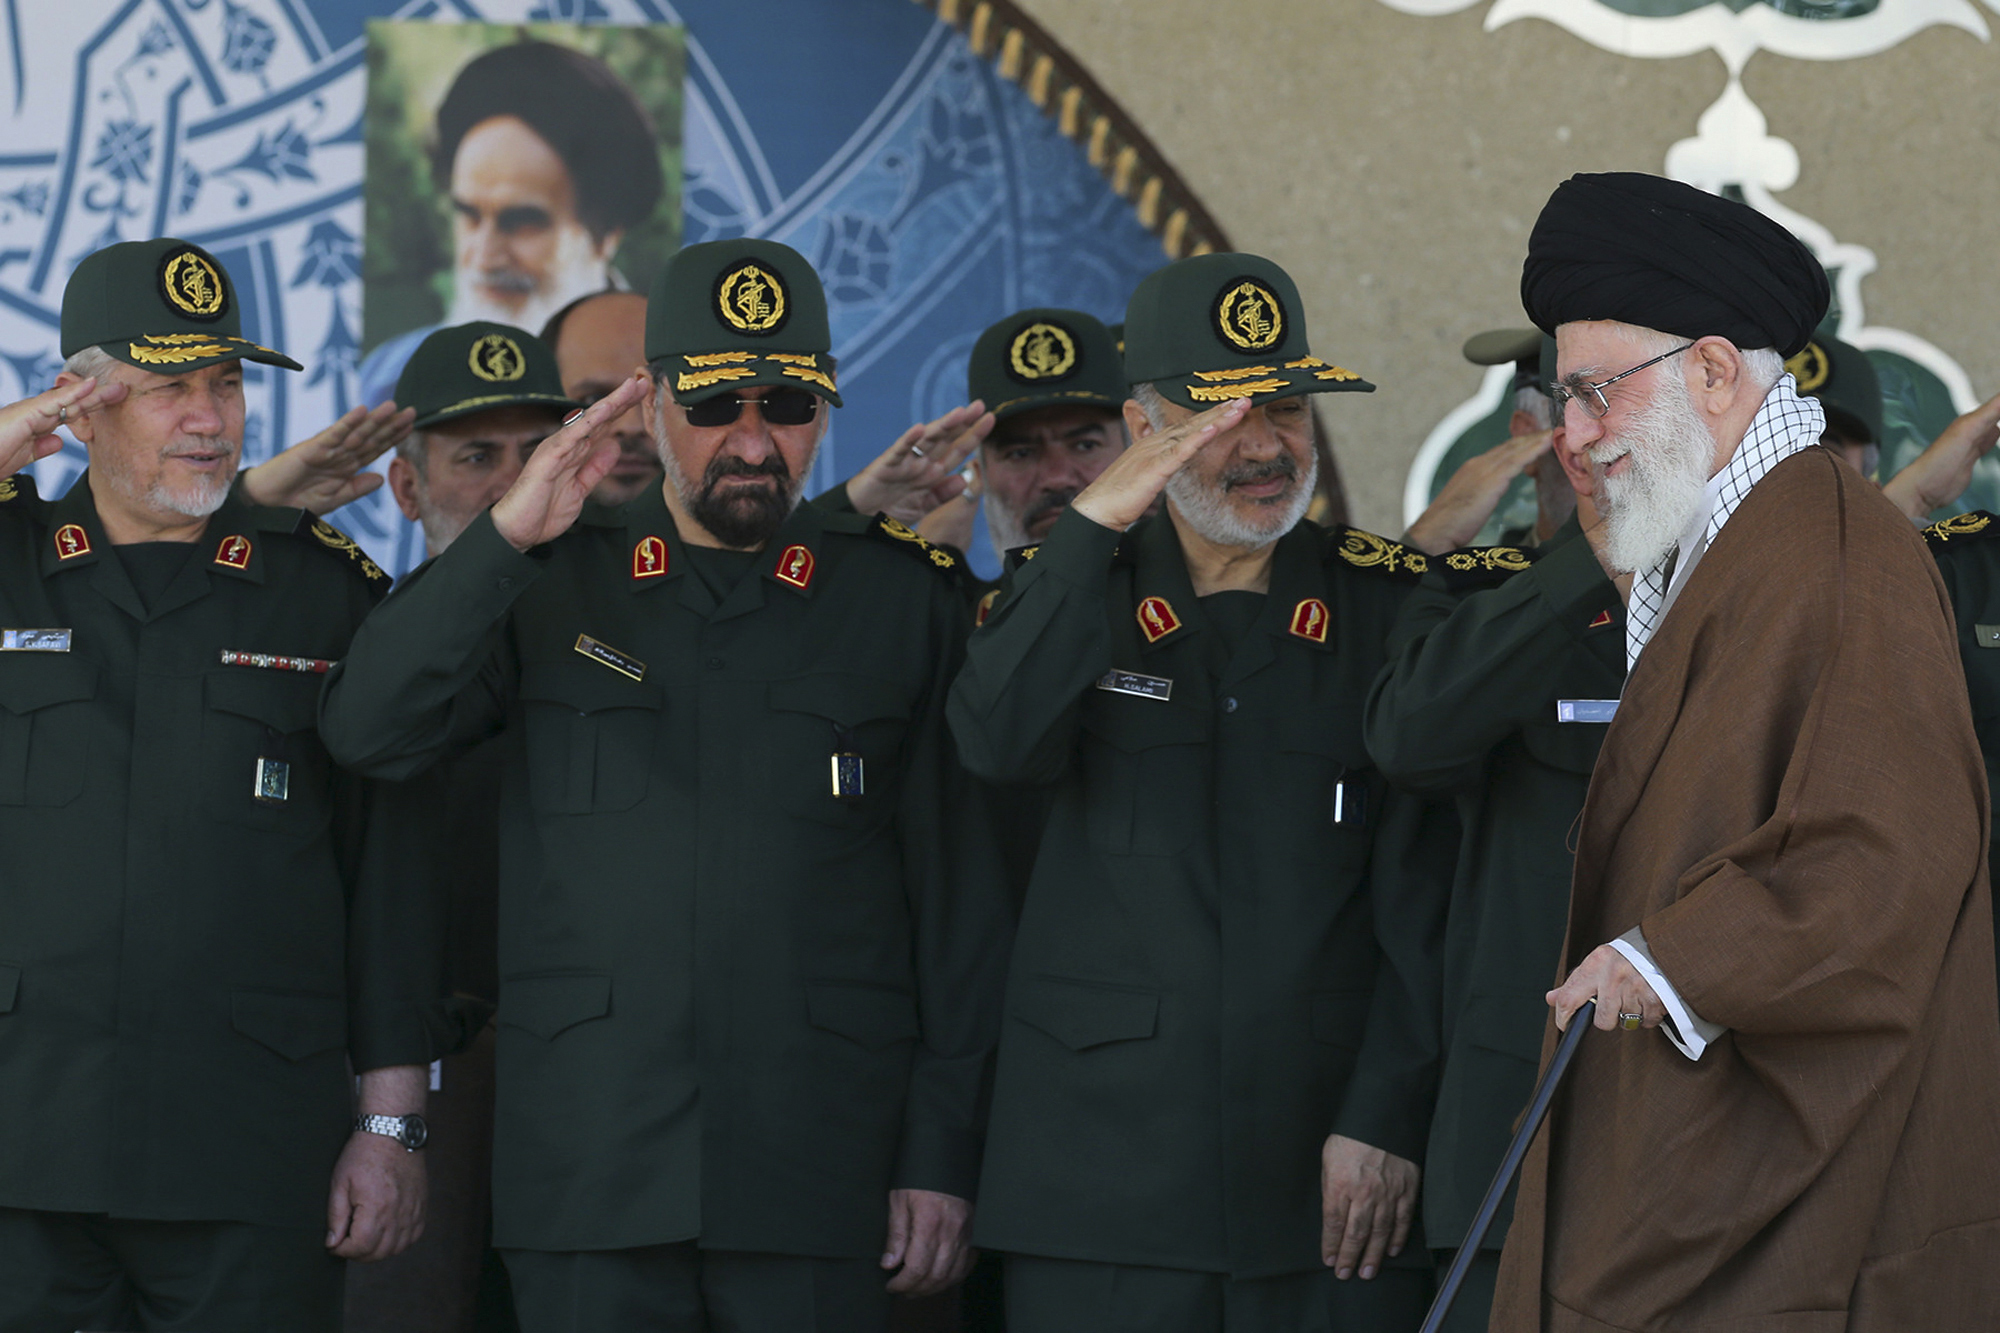 FILE- In this picture released by an official website of the office of the Iranian supreme leader, former commander of the Revolutionary Guard Mohsen Rezaei, second left, salutes Supreme Leader Ayatollah Ali Khamenei, right, while he arrives at a graduation ceremony of the Revolutionary Guard's officers, in Tehran, Iran.  Former leader of Iran's powerful Revolutionary Guard Mohsen Rezaei said on Friday, July 5, 2019, that the Islamic Republic should consider seizing a British oil tanker in response to authorities detaining an Iranian oil tanker off the coast Gibraltar. (Office of the Iranian Supreme Leader via AP, FILE)